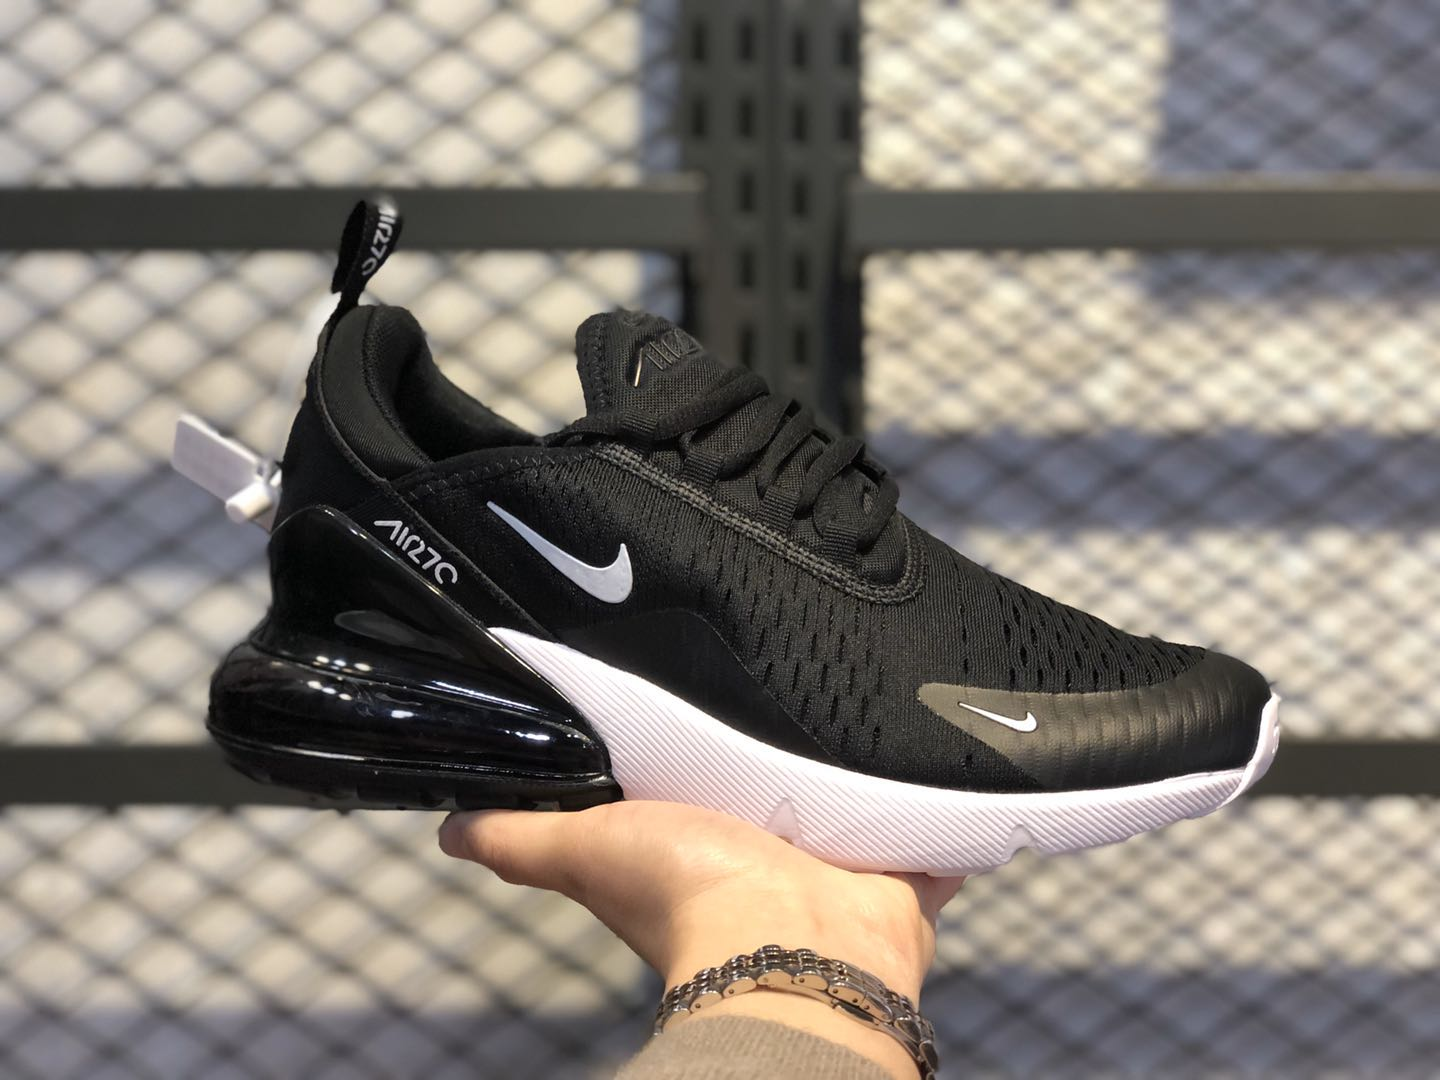 Nike Air Max 270 Black/White Running Shoes For Buy AH8050-002